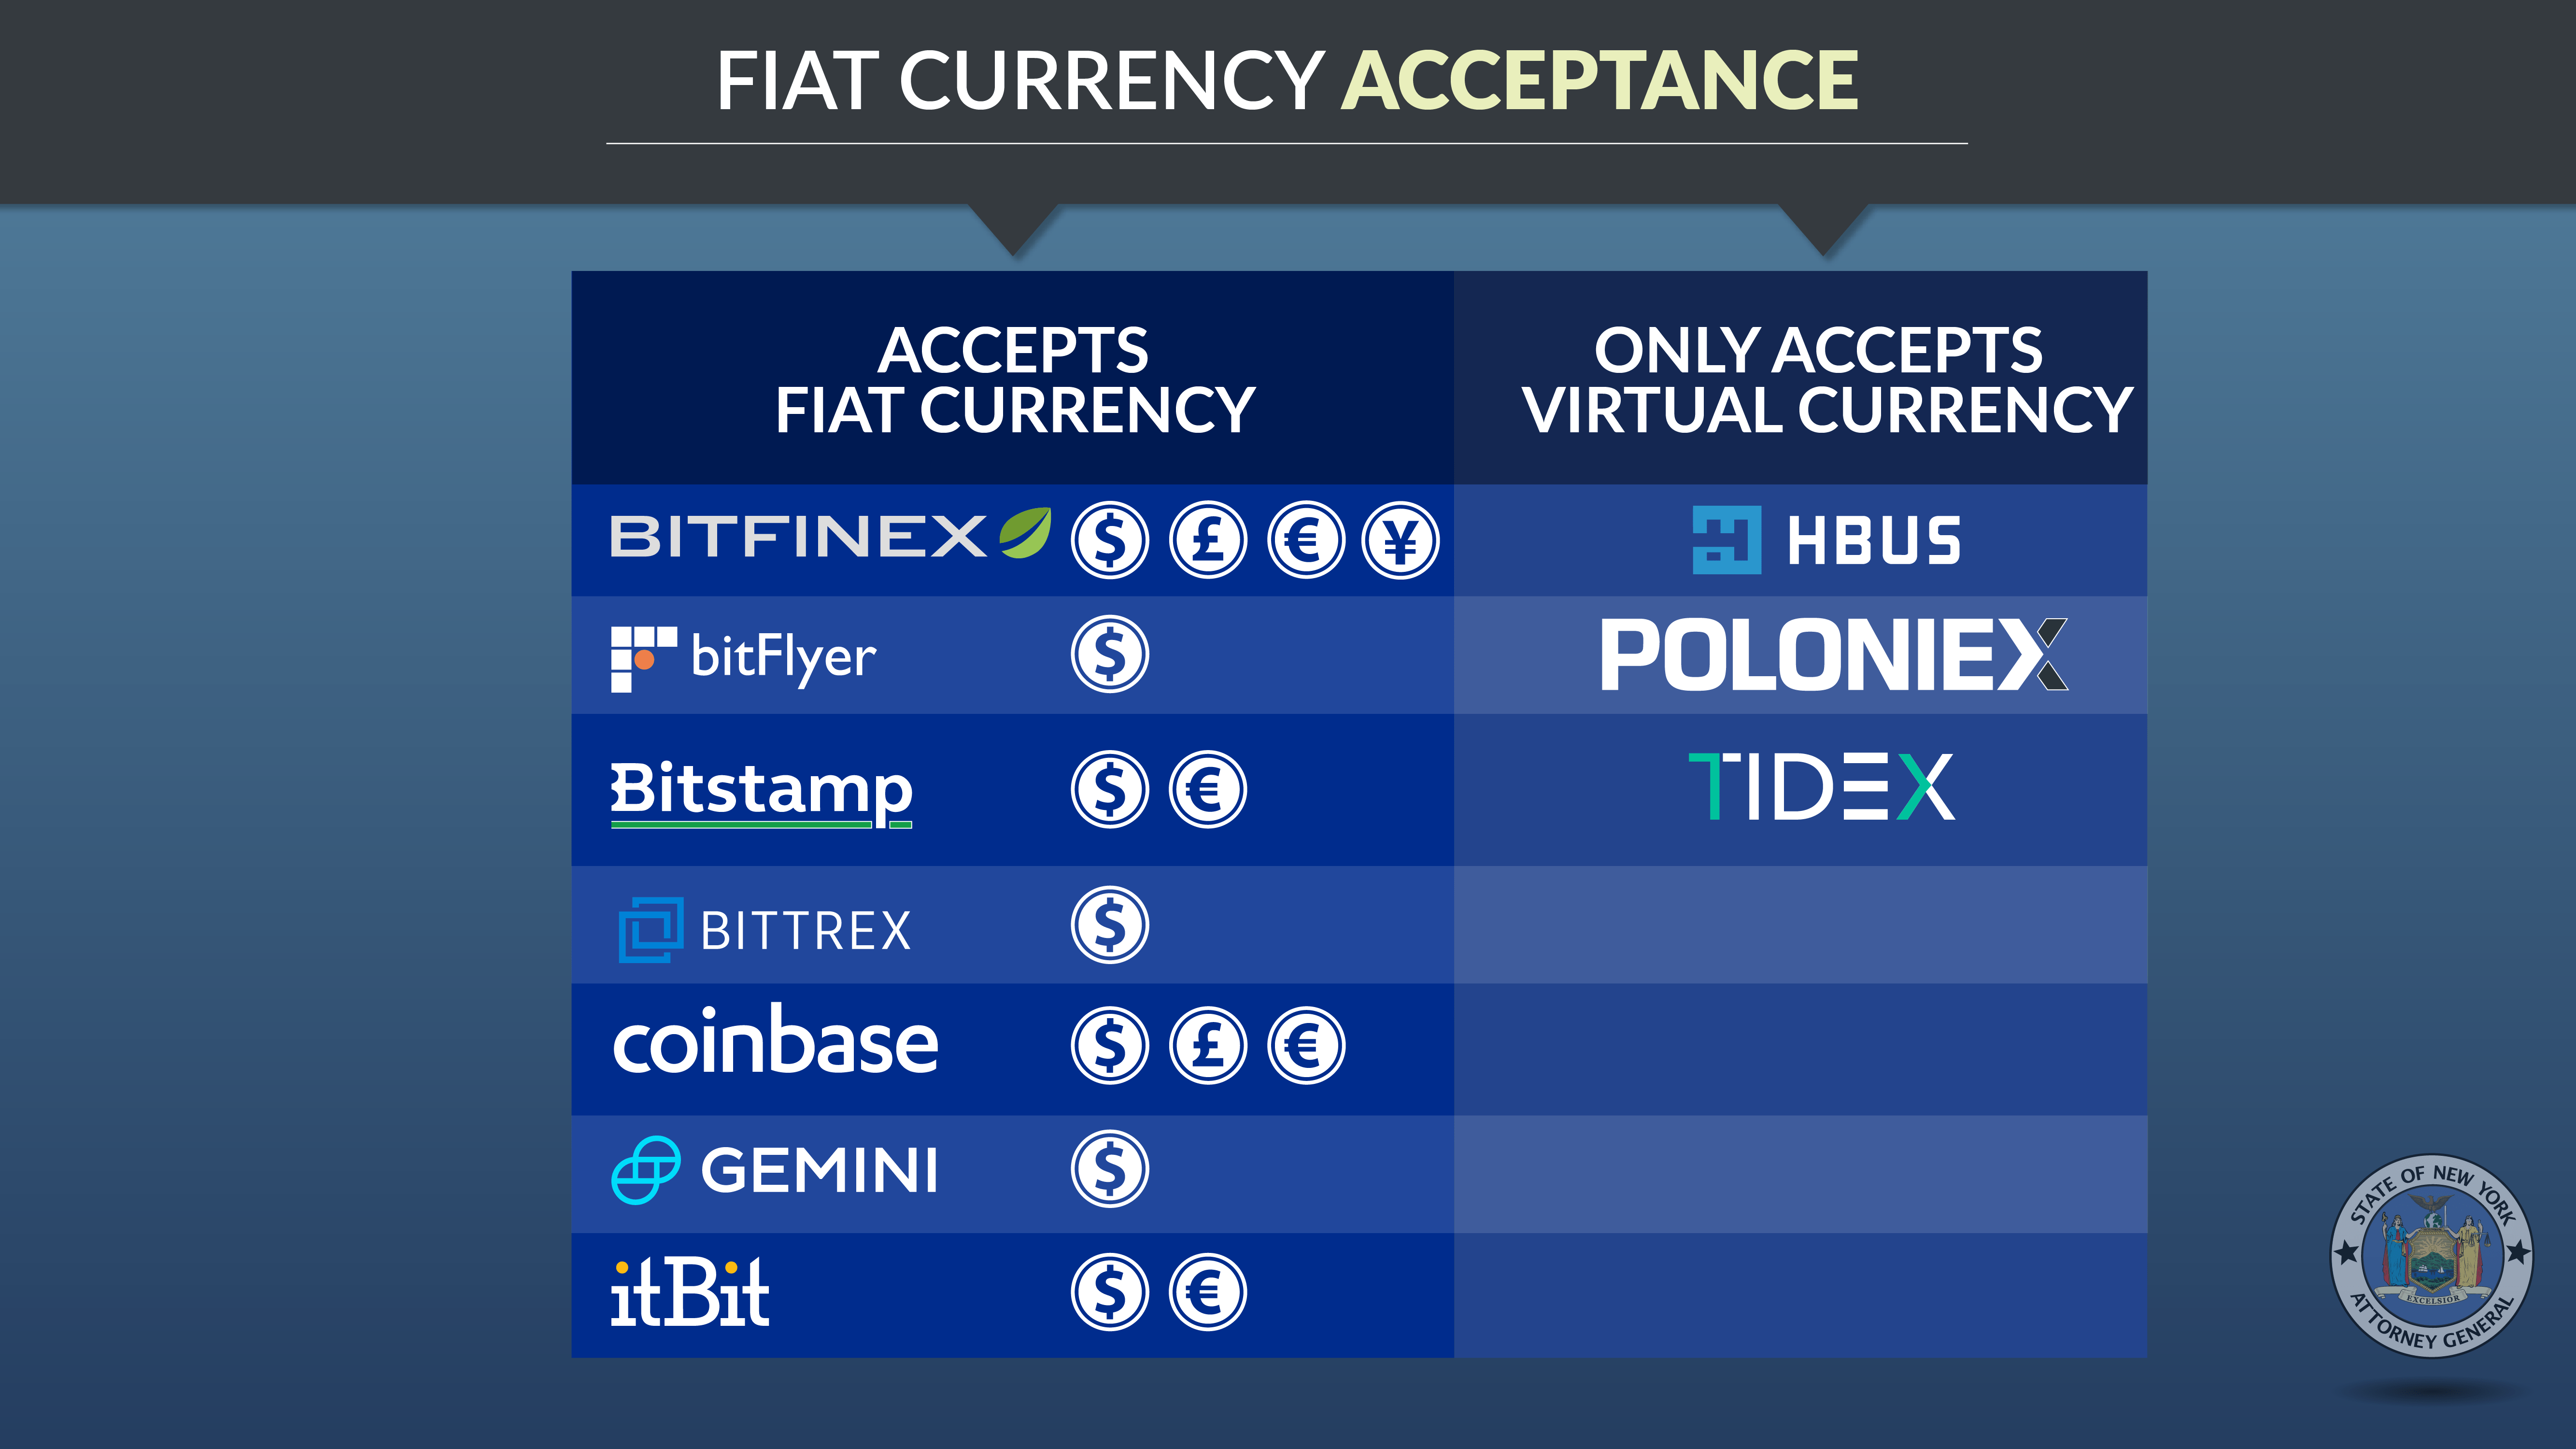 Fiat Currency Acceptance